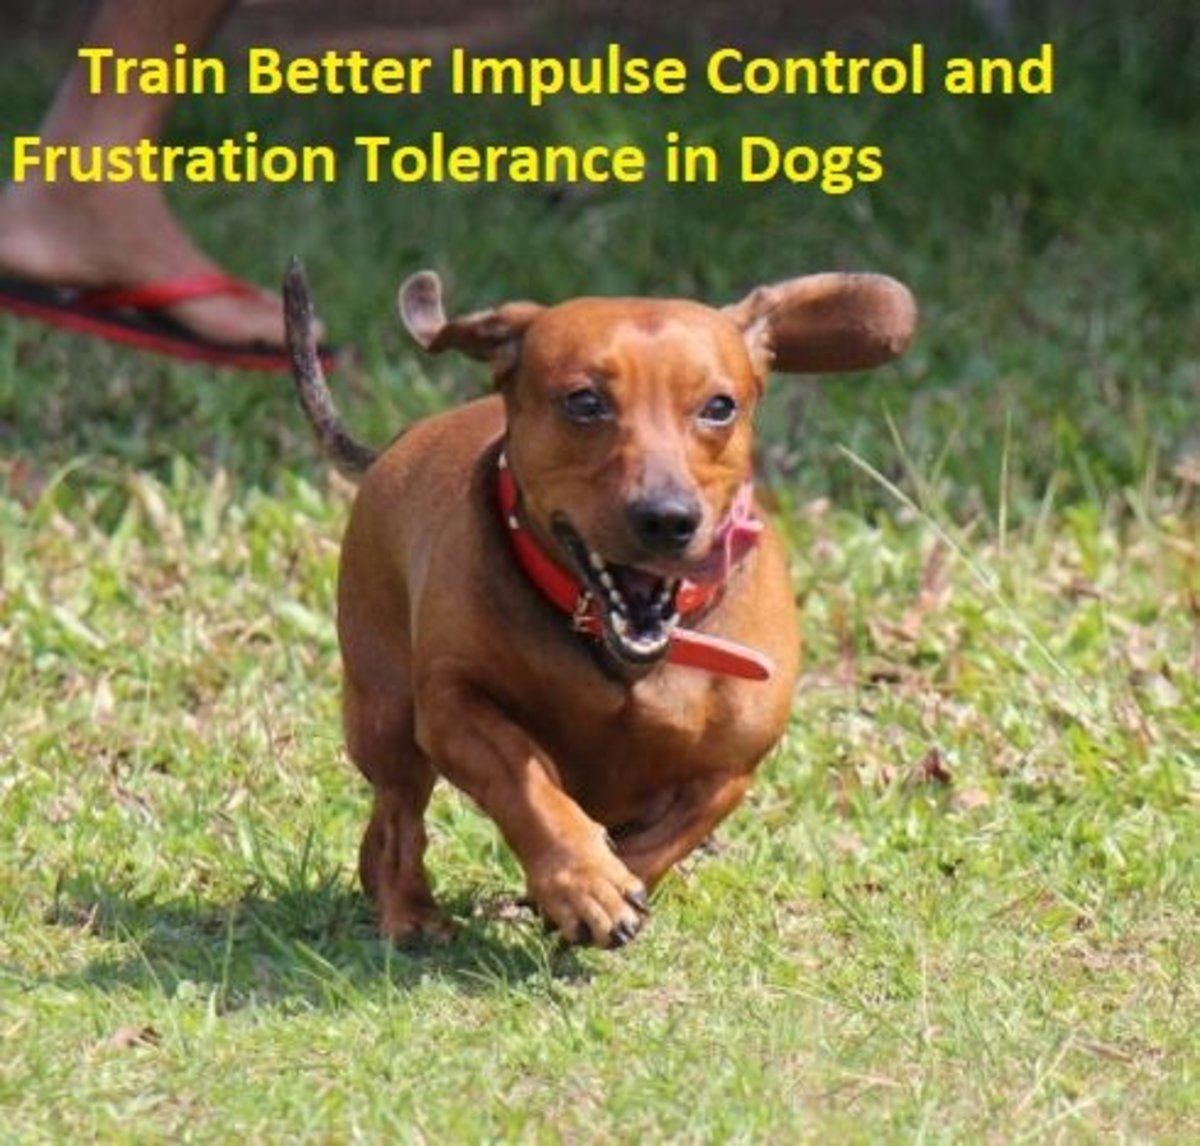 8 Exercises for Training a Dog's Impulse Control and